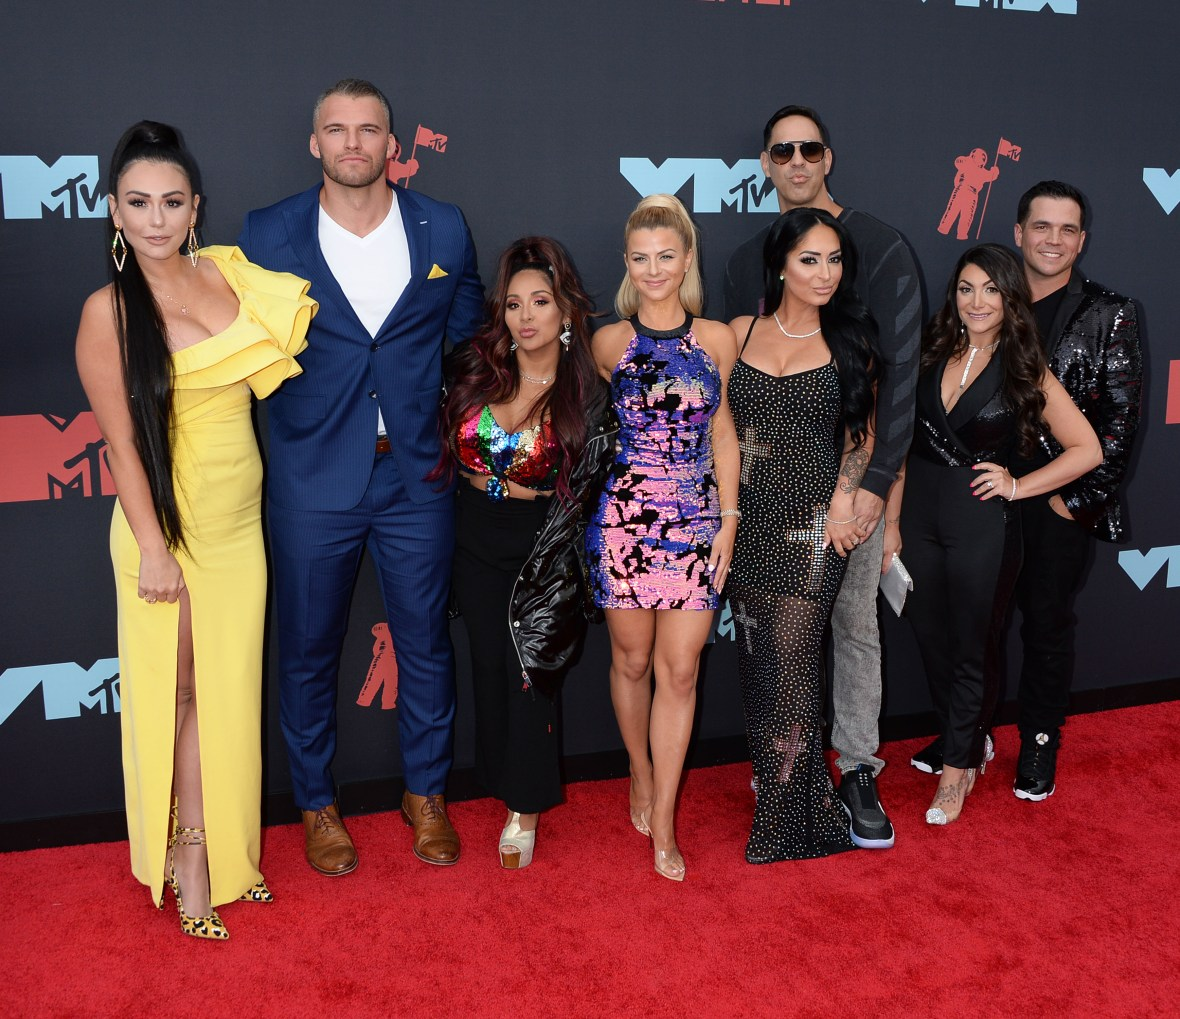 Angelina Pivarnick With 'Jersey Shore' Castmates